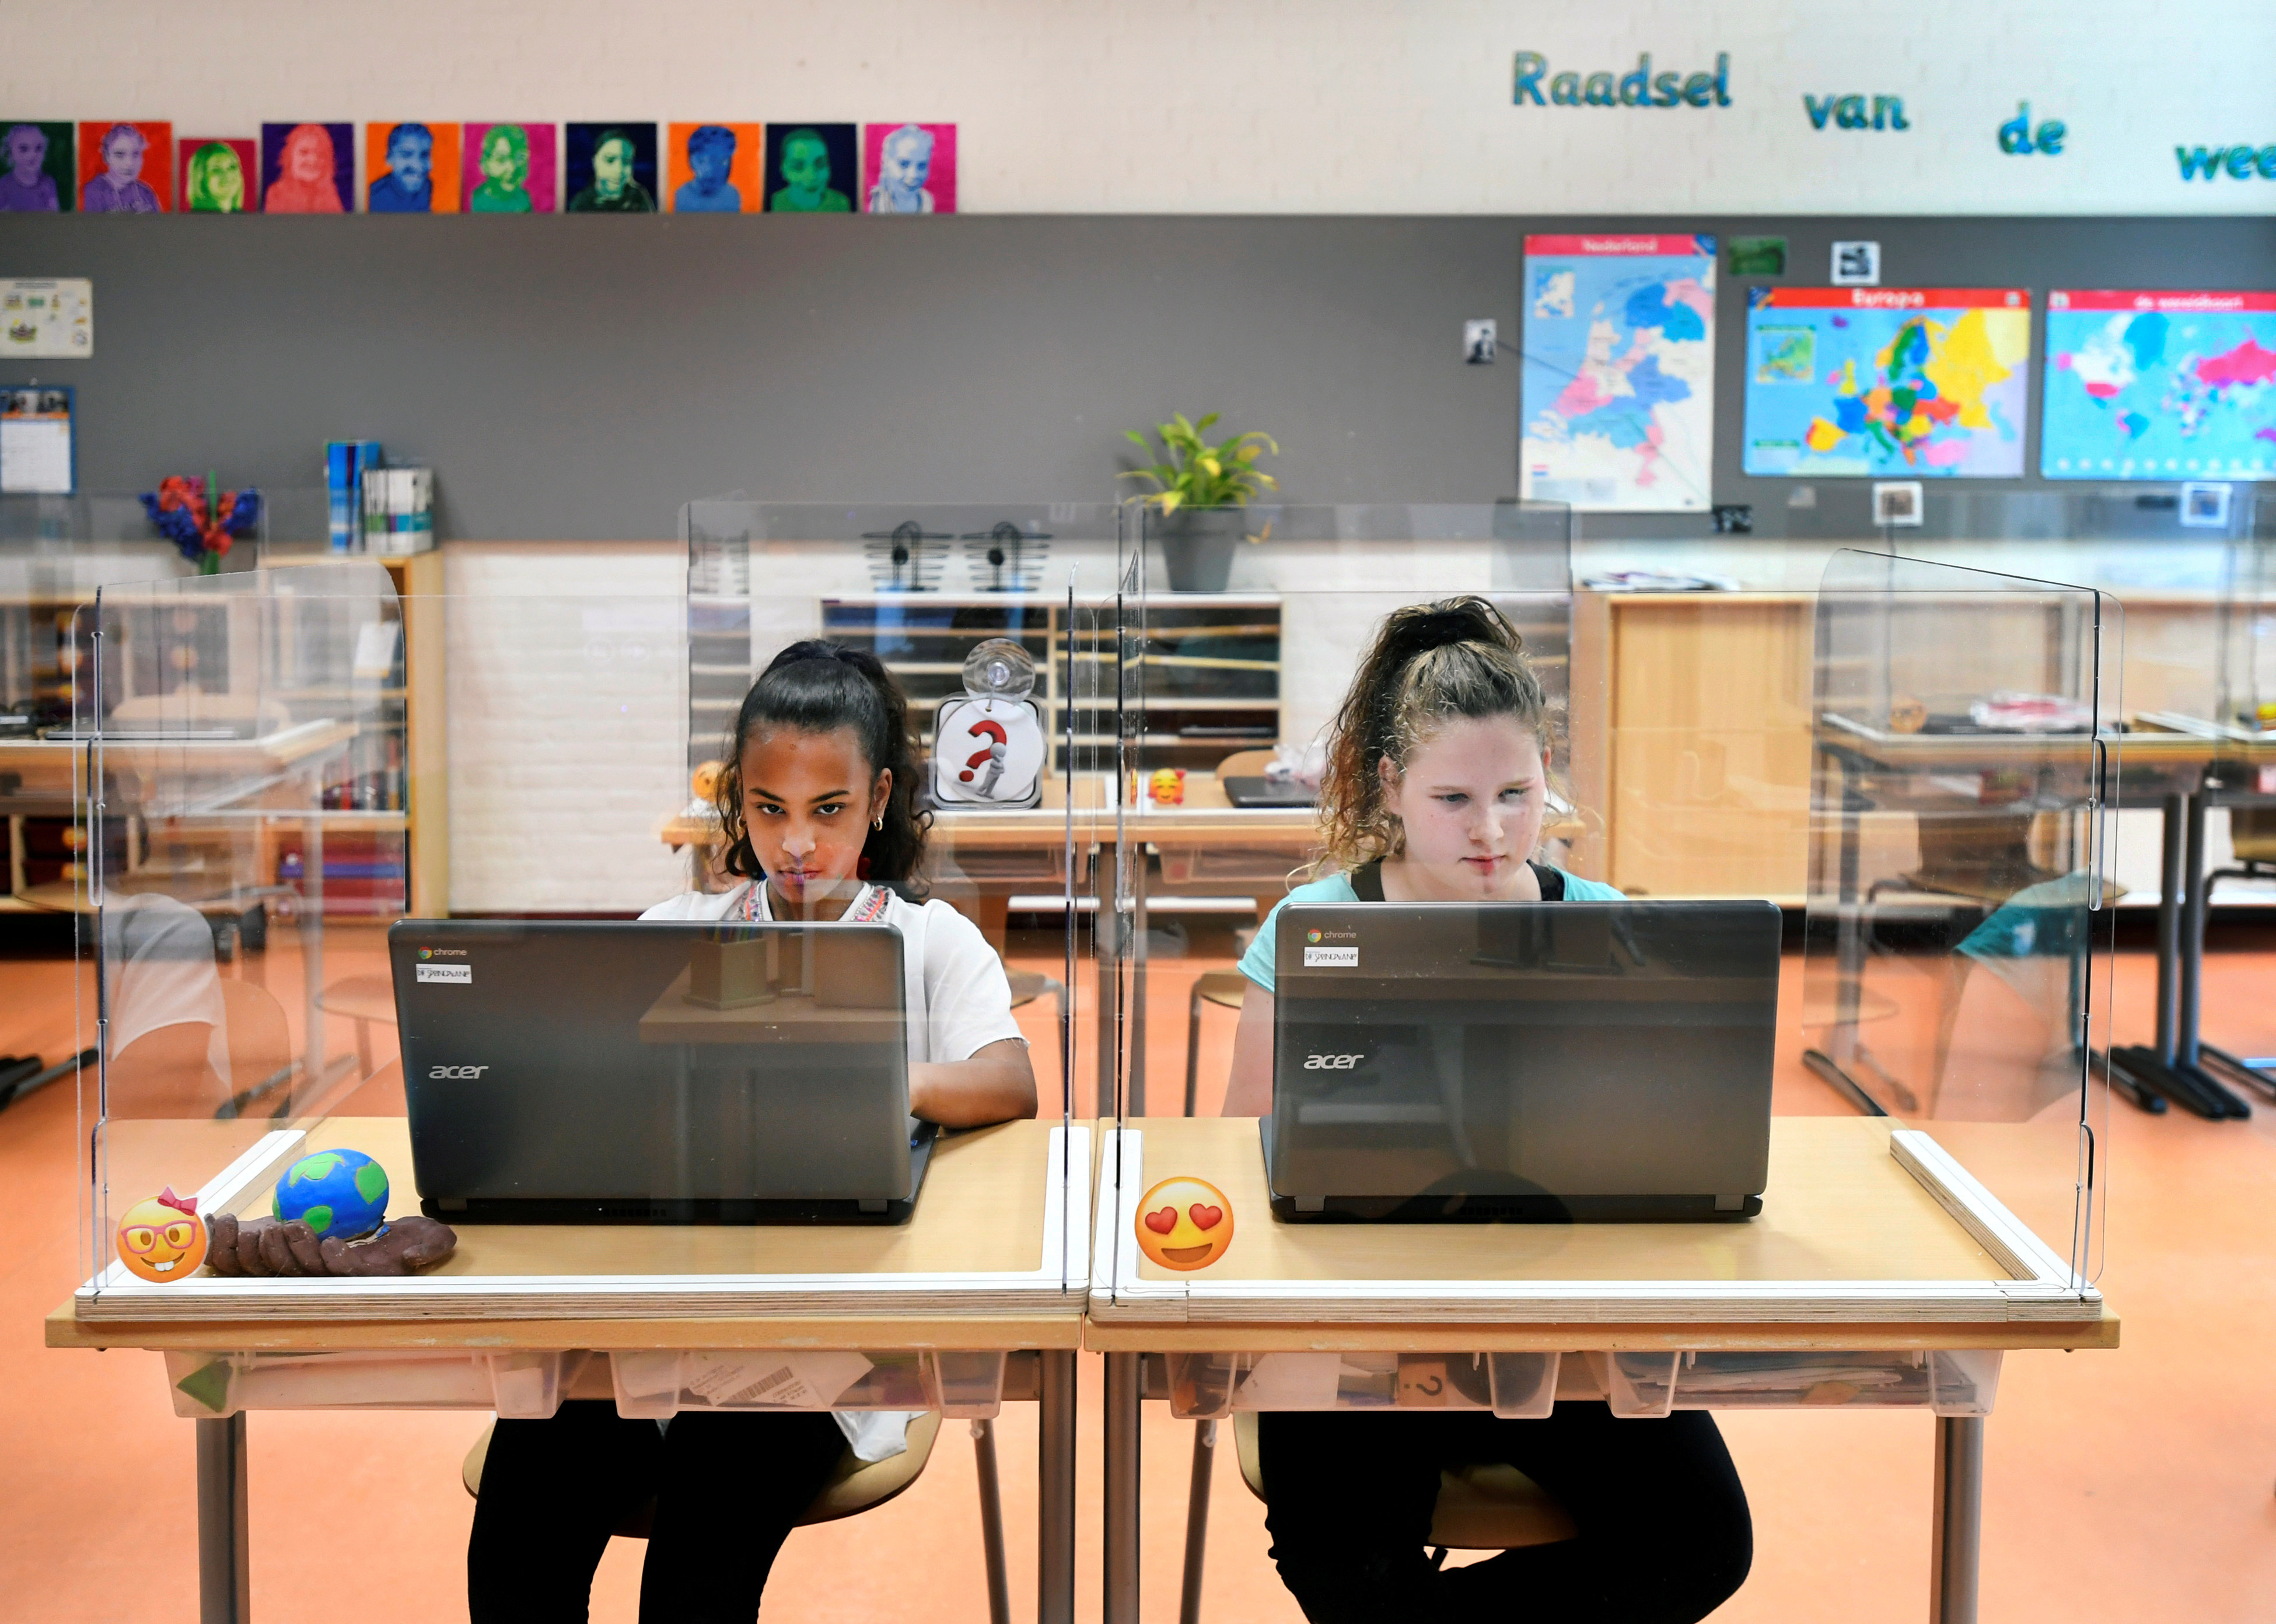 Pupils sitting behind partition boards made of plexiglass attend a class at a primary school, during the coronavirus disease (COVID-19) outbreak, in Den Bosch, Netherlands, May 8, 2020. REUTERS/Piroschka van de Wouw     TPX IMAGES OF THE DAY - RC2DKG9C47E1